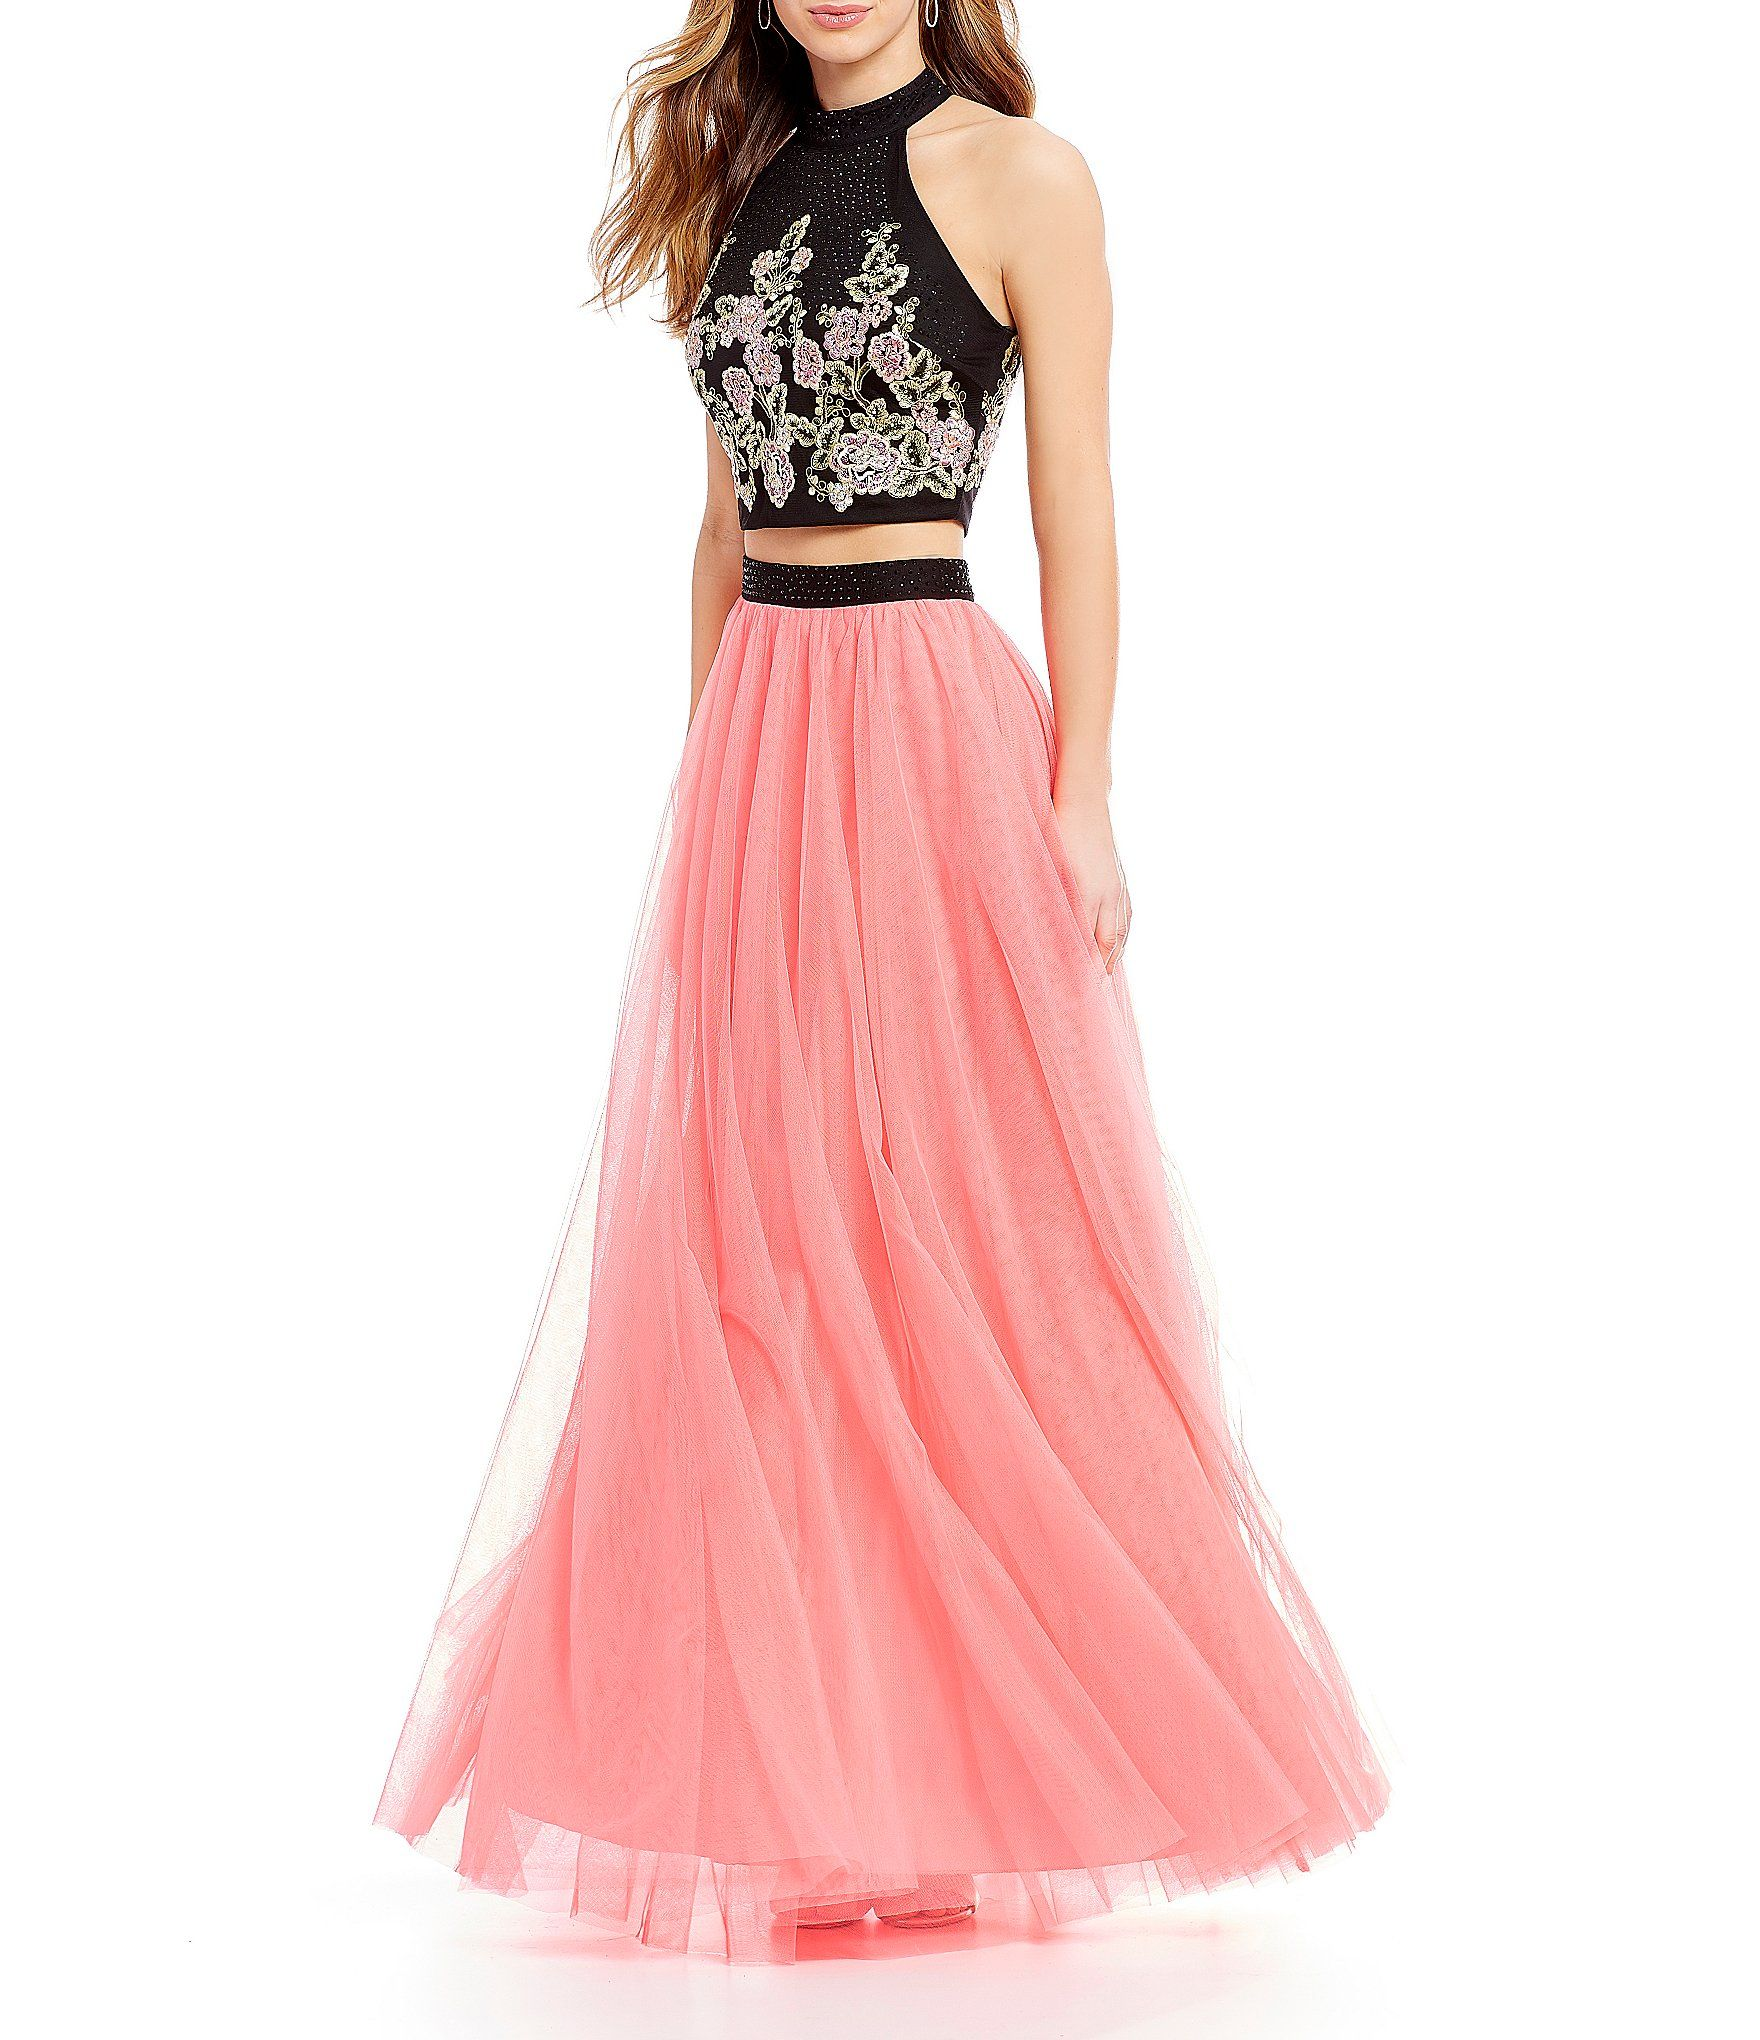 Jodi Kristopher Mock Neck Embroidered Two-Piece Ball Gown   Dillards ...